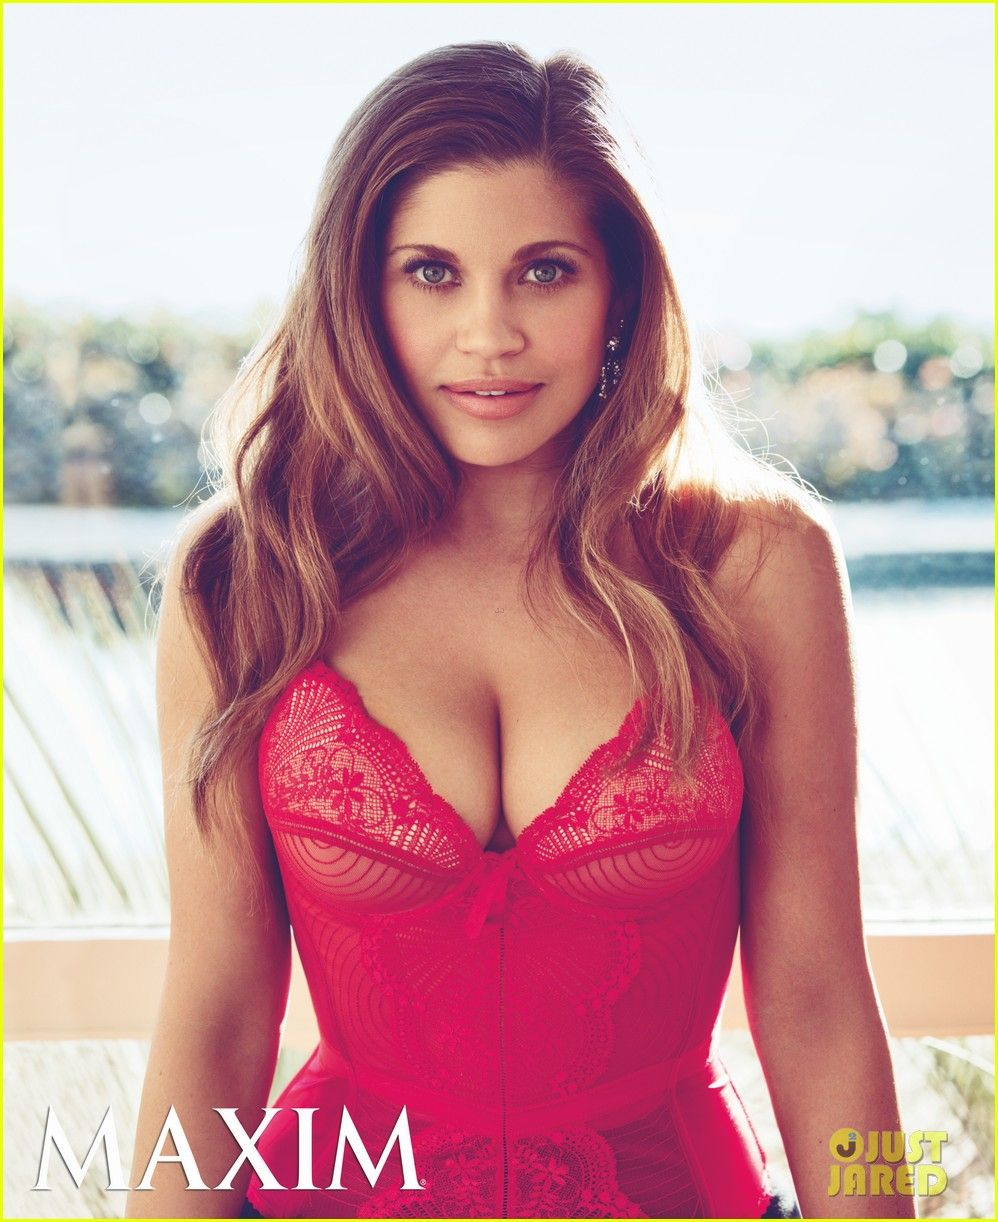 Boy Meet Topanga World Danielle Fishel